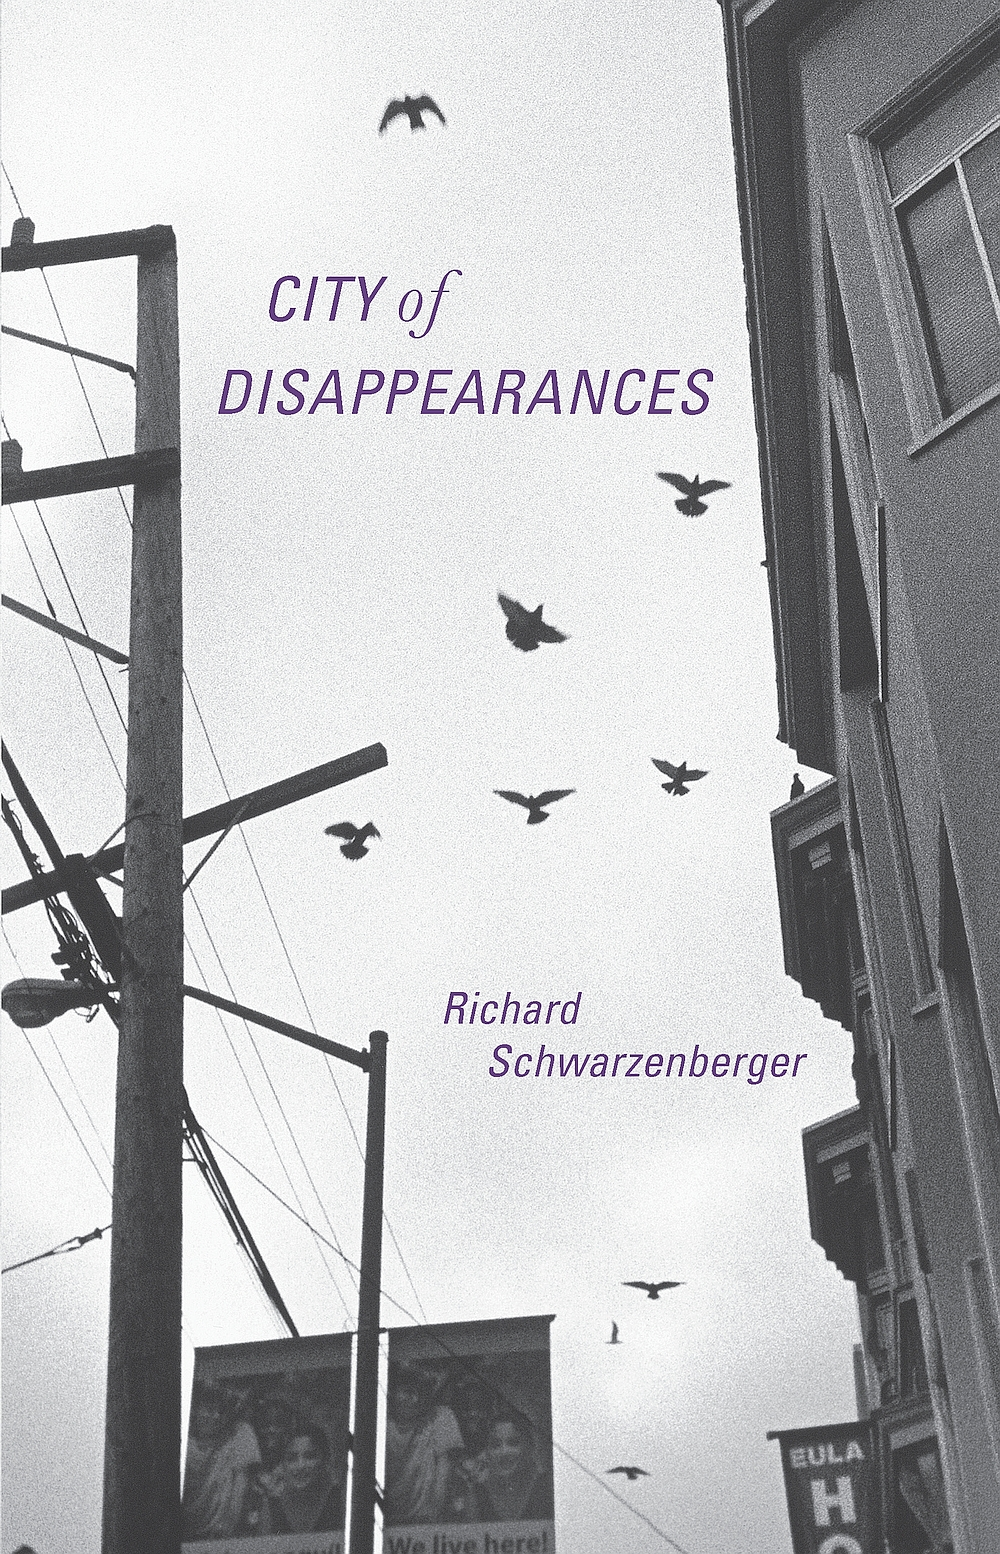 City of Disappearances